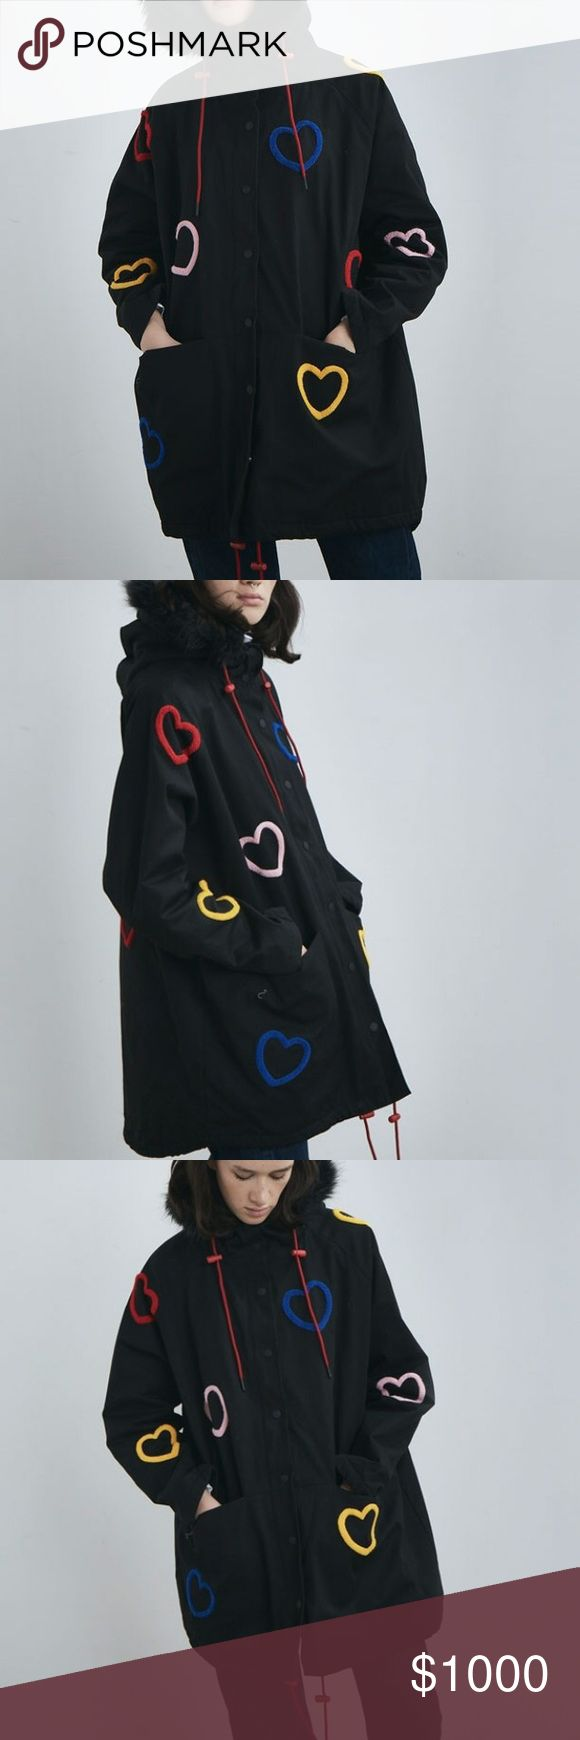 ISO*** Lazy oaf heart parka jacket ISO*** Looking for this item! Please tag me (: thank you in advance !!!! #LazyOaf Lazy Oaf Jackets & Coats